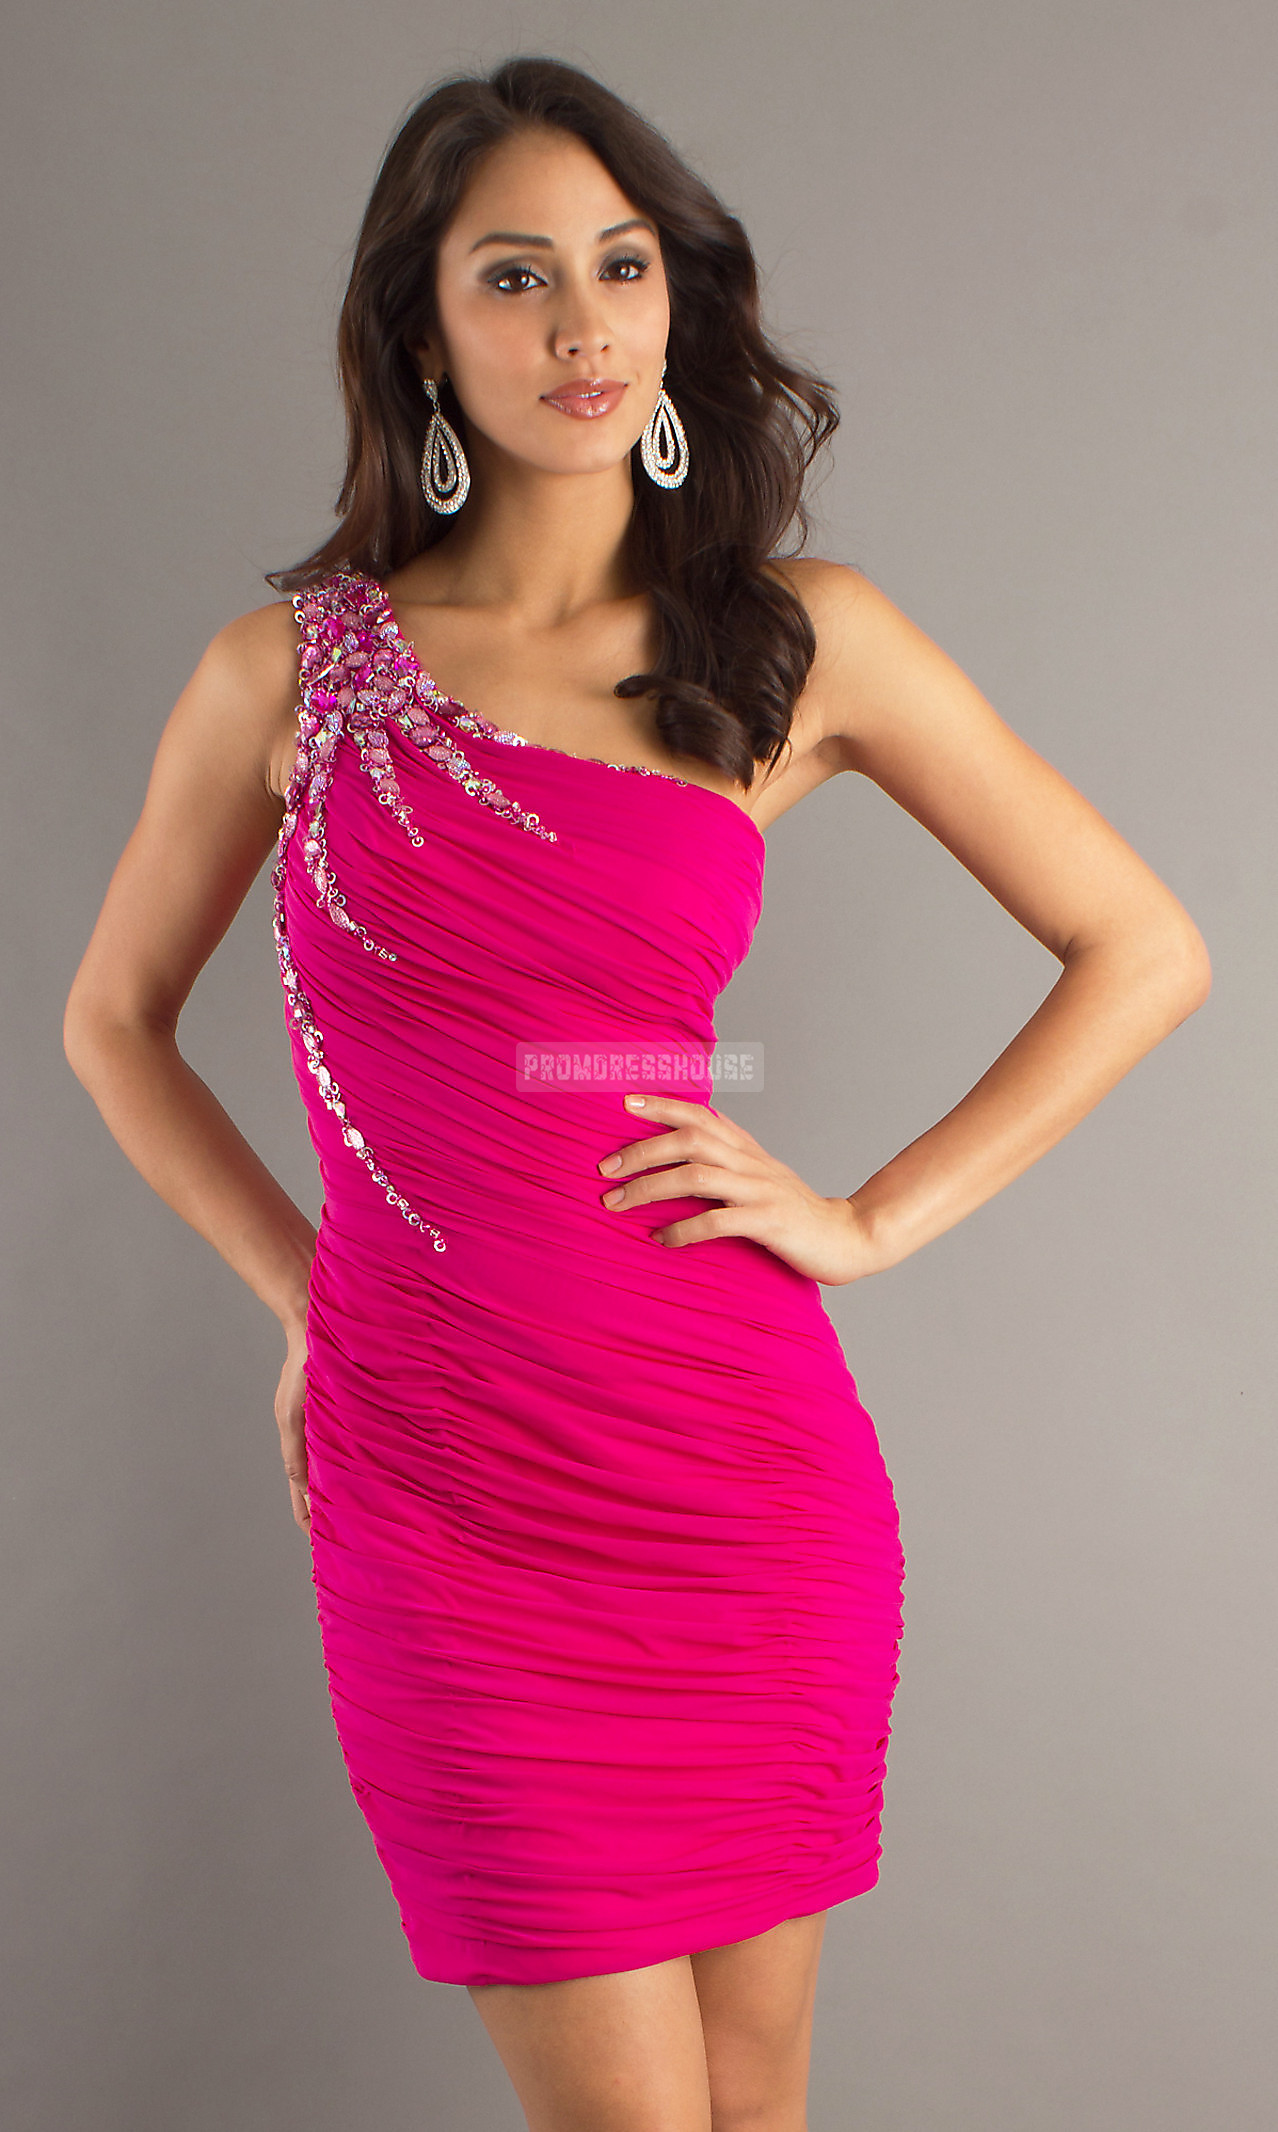 Sleeveless Sheath One Shoulder Fuchsia Chiffon Cocktail Dress - Promdresshouse.com